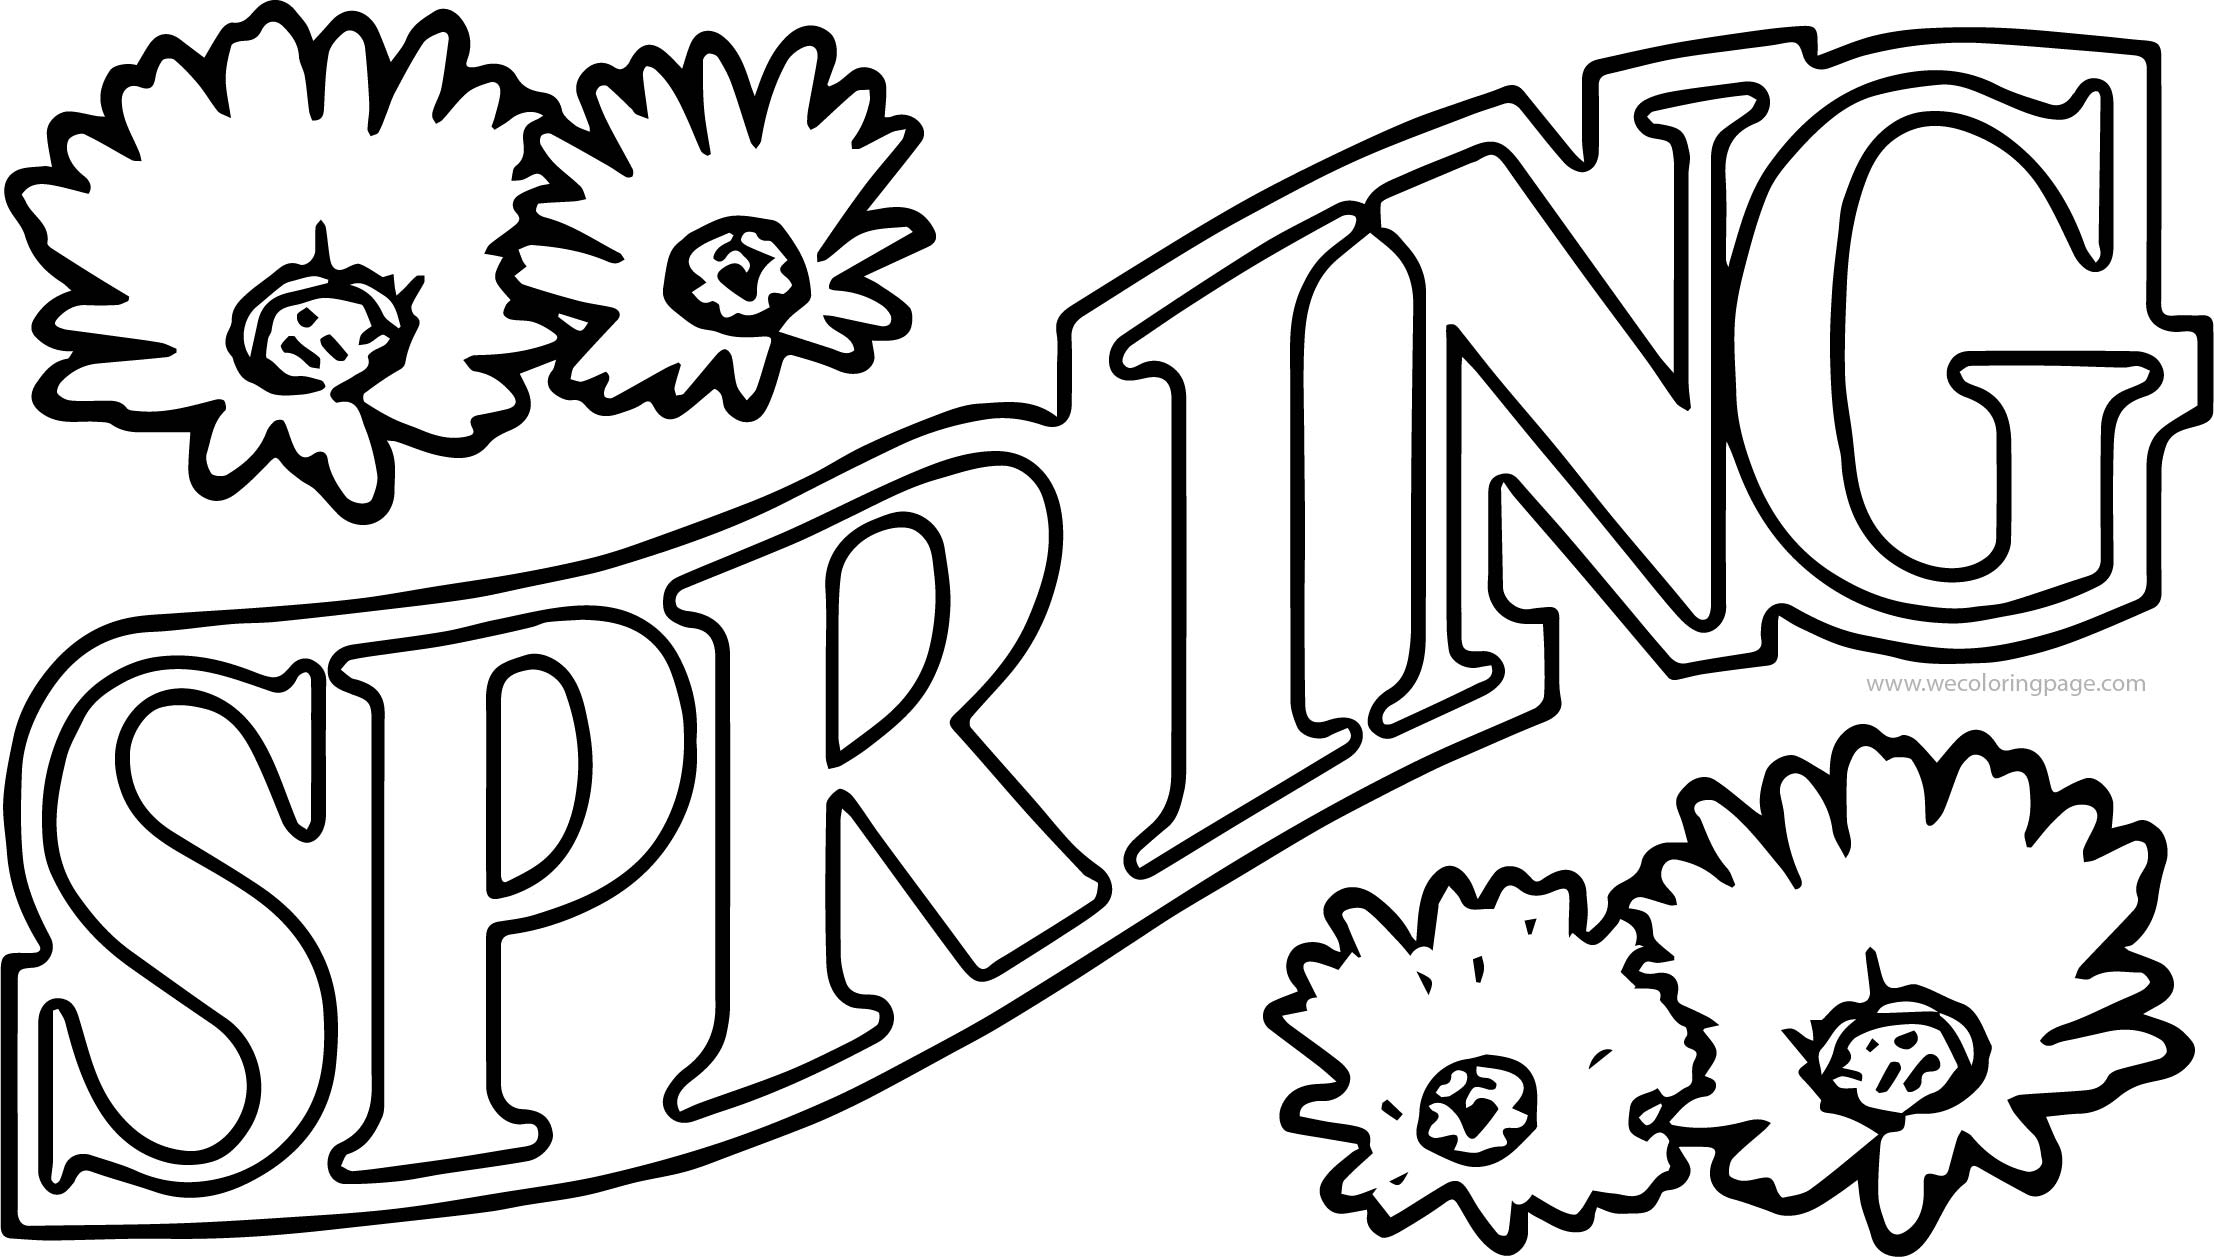 Spring text flower coloring pages wecoloringpage spring text flower coloring pages mightylinksfo